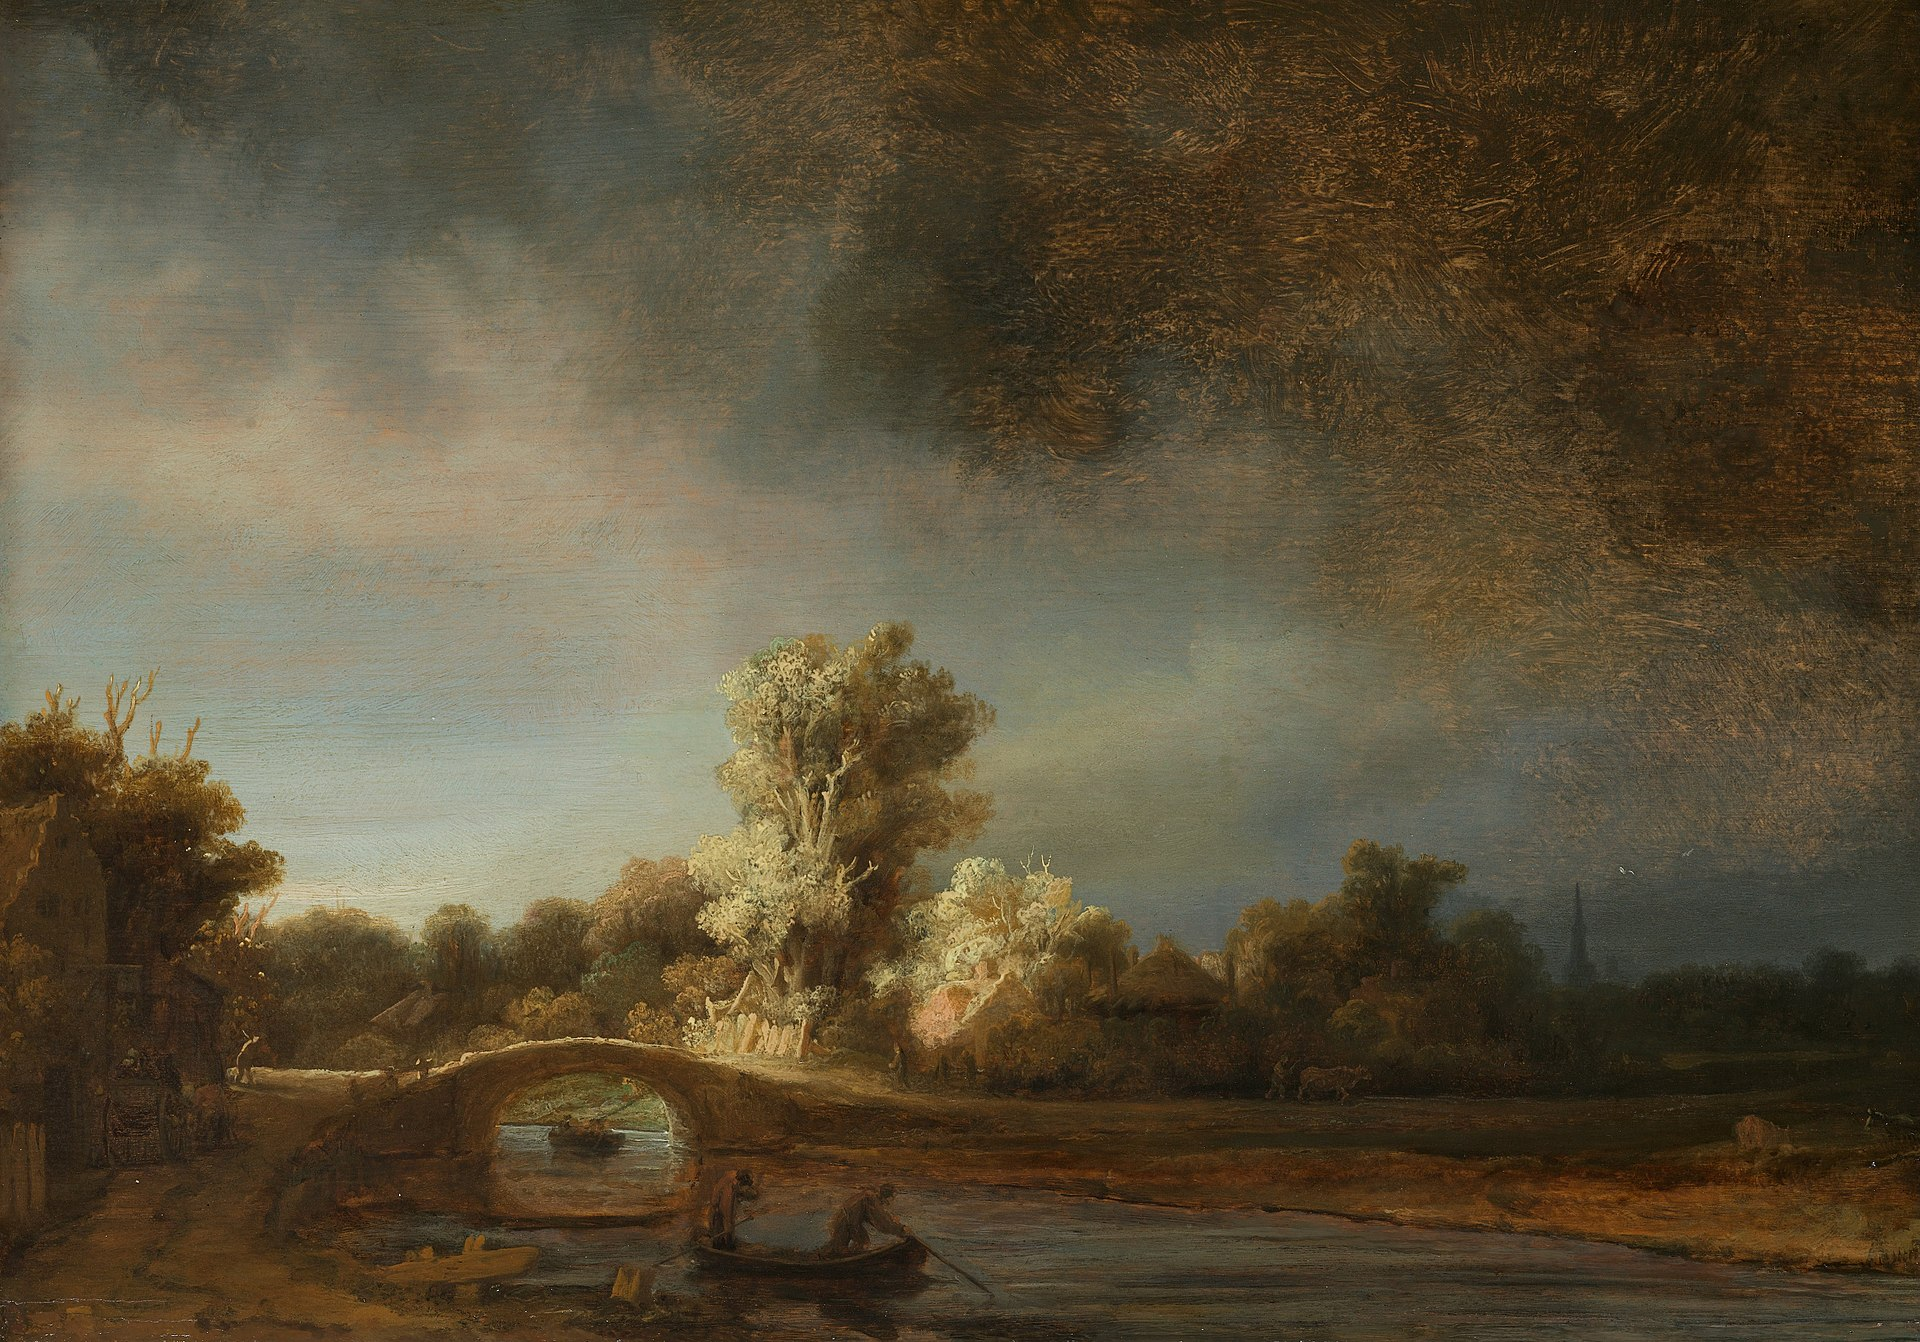 Landscape with a Stone Bridge, Rembrandt van Rijn, c. 1638  oil on panel, h 29.5cm × w 42.5cm × d 5.5cm  Image Courtesy of Rijksmuseum